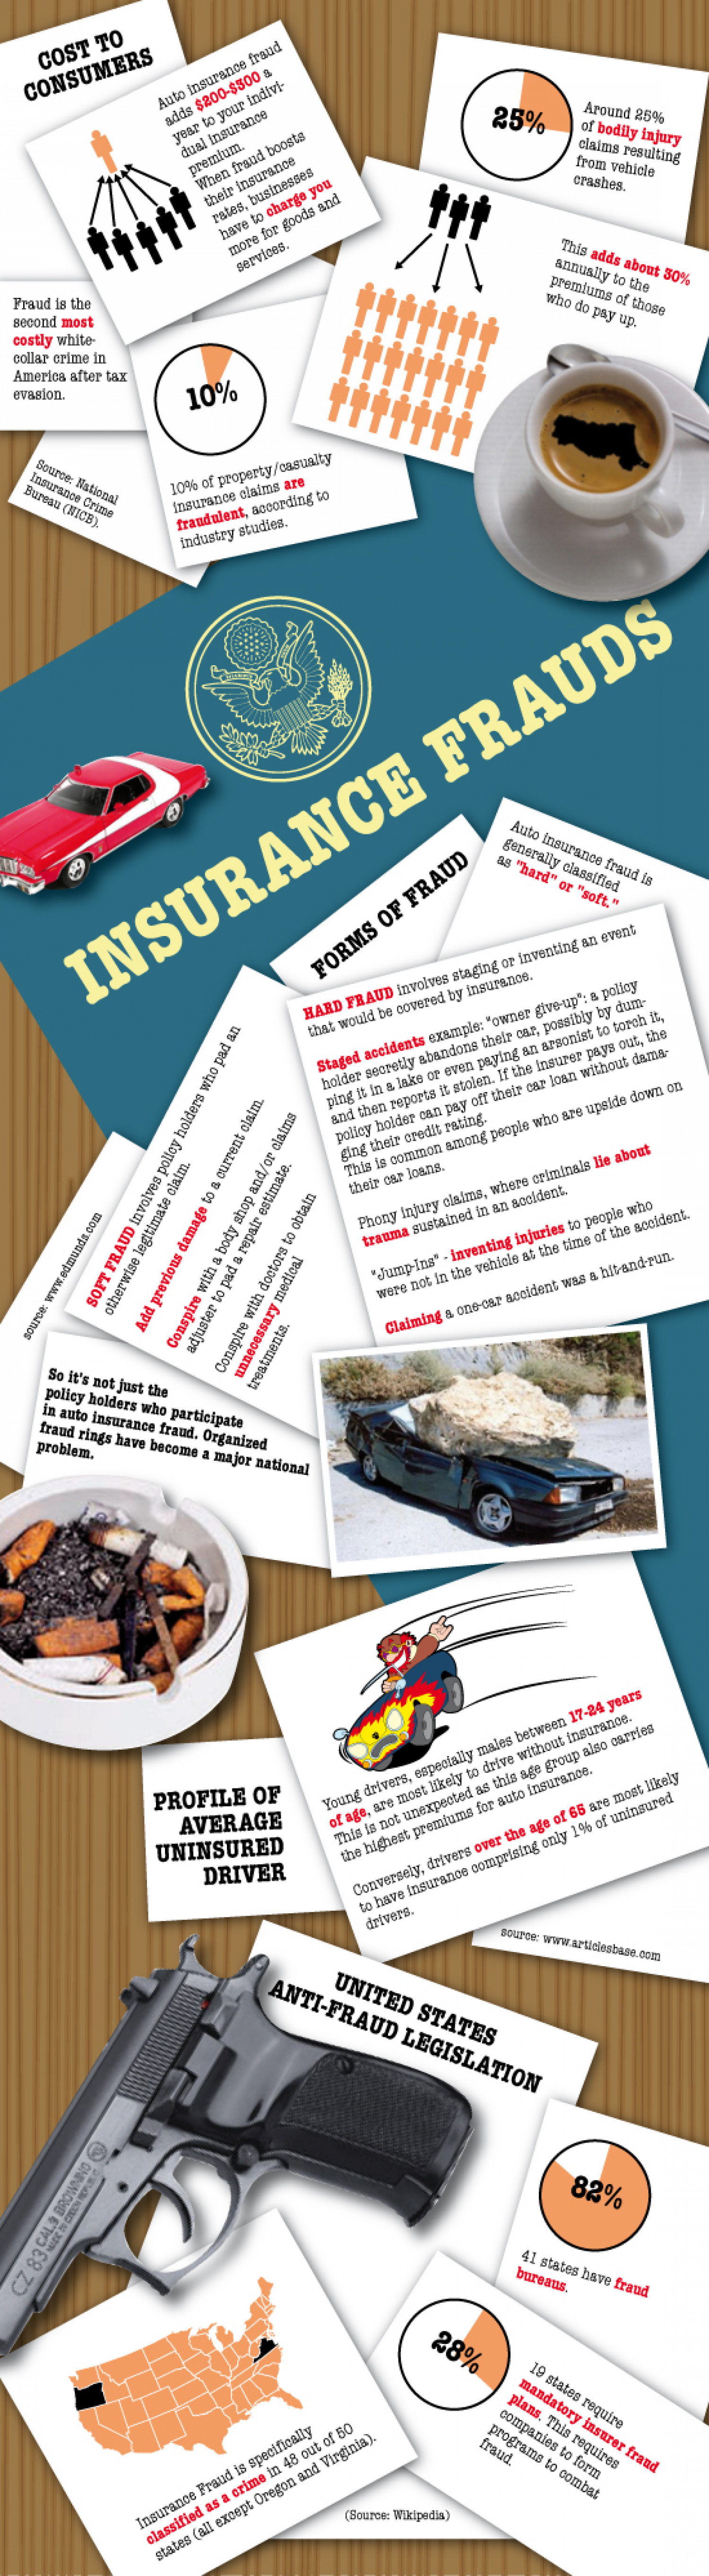 Infographic About Auto Insurance Fraud Infographic